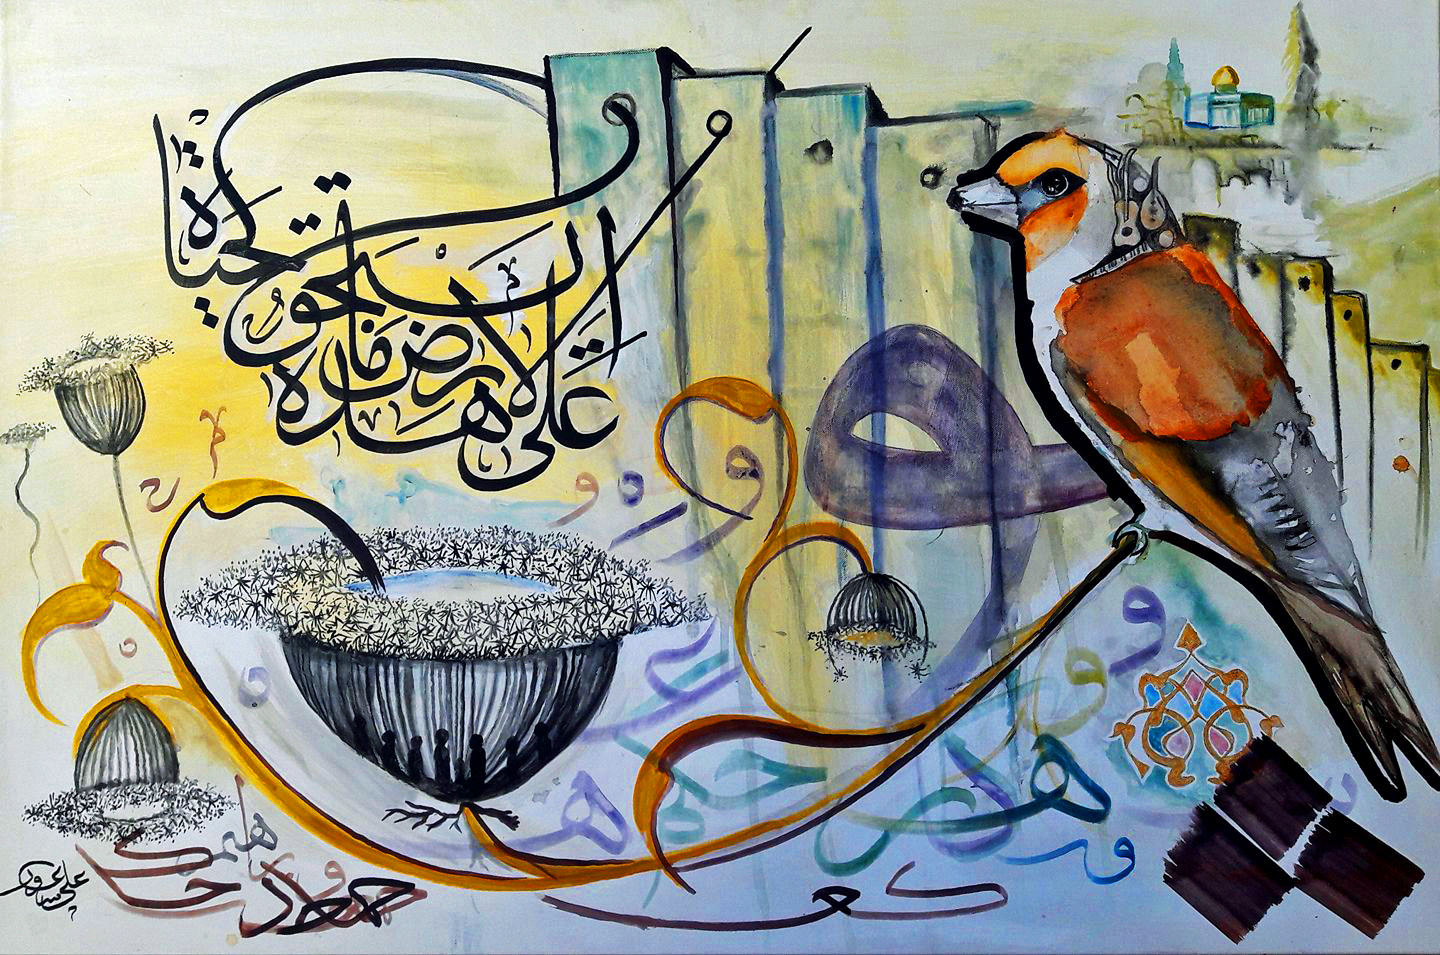 a painting involving a bird with red feathers and black Arabic writing on a blue and yellow background